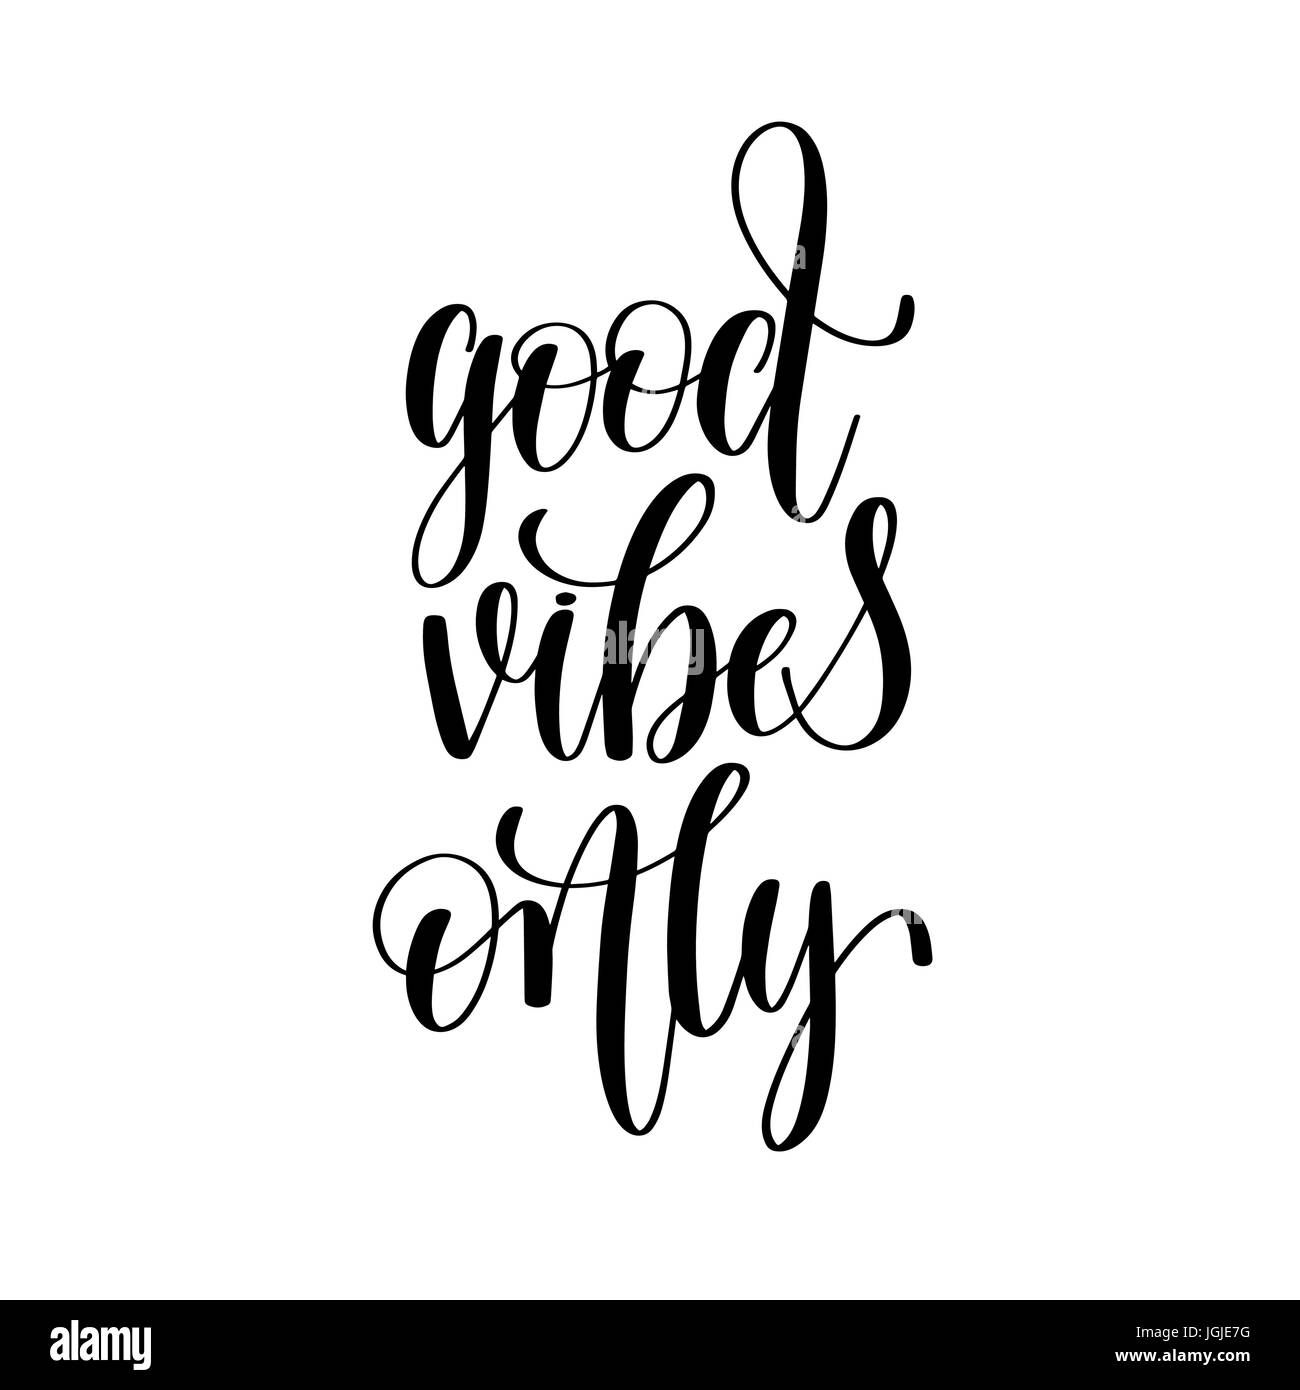 Good Vibes Only Black And White Positive Quote Stock Vector Art